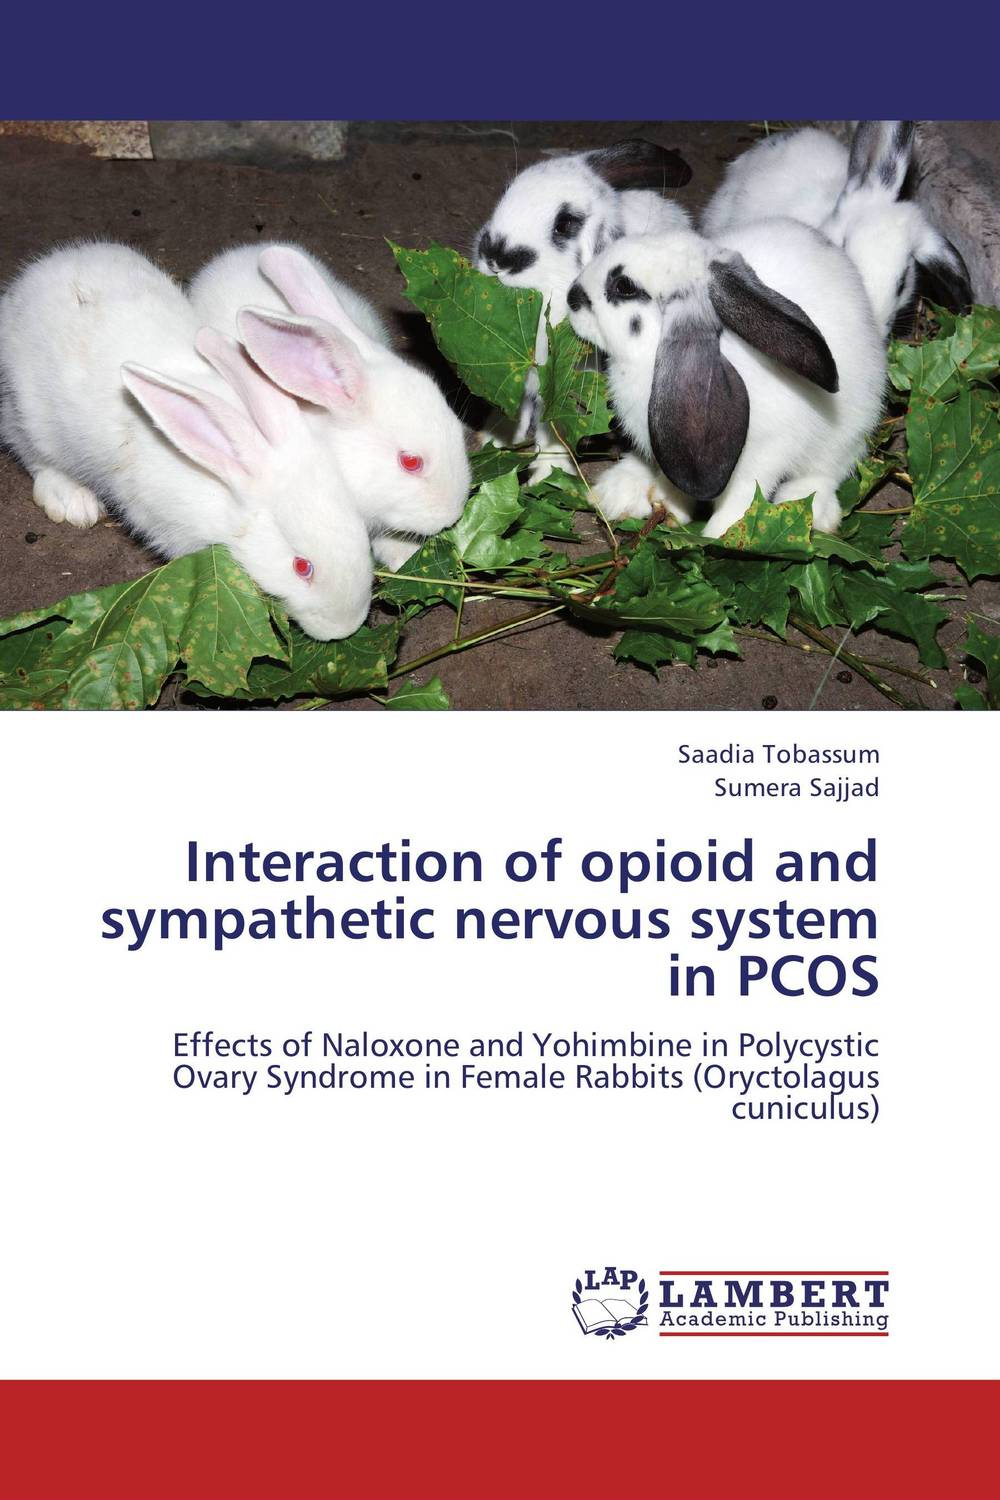 Interaction of opioid and sympathetic nervous system in PCOS nervous system model anatomical models of the nervous system model of the human nervous system